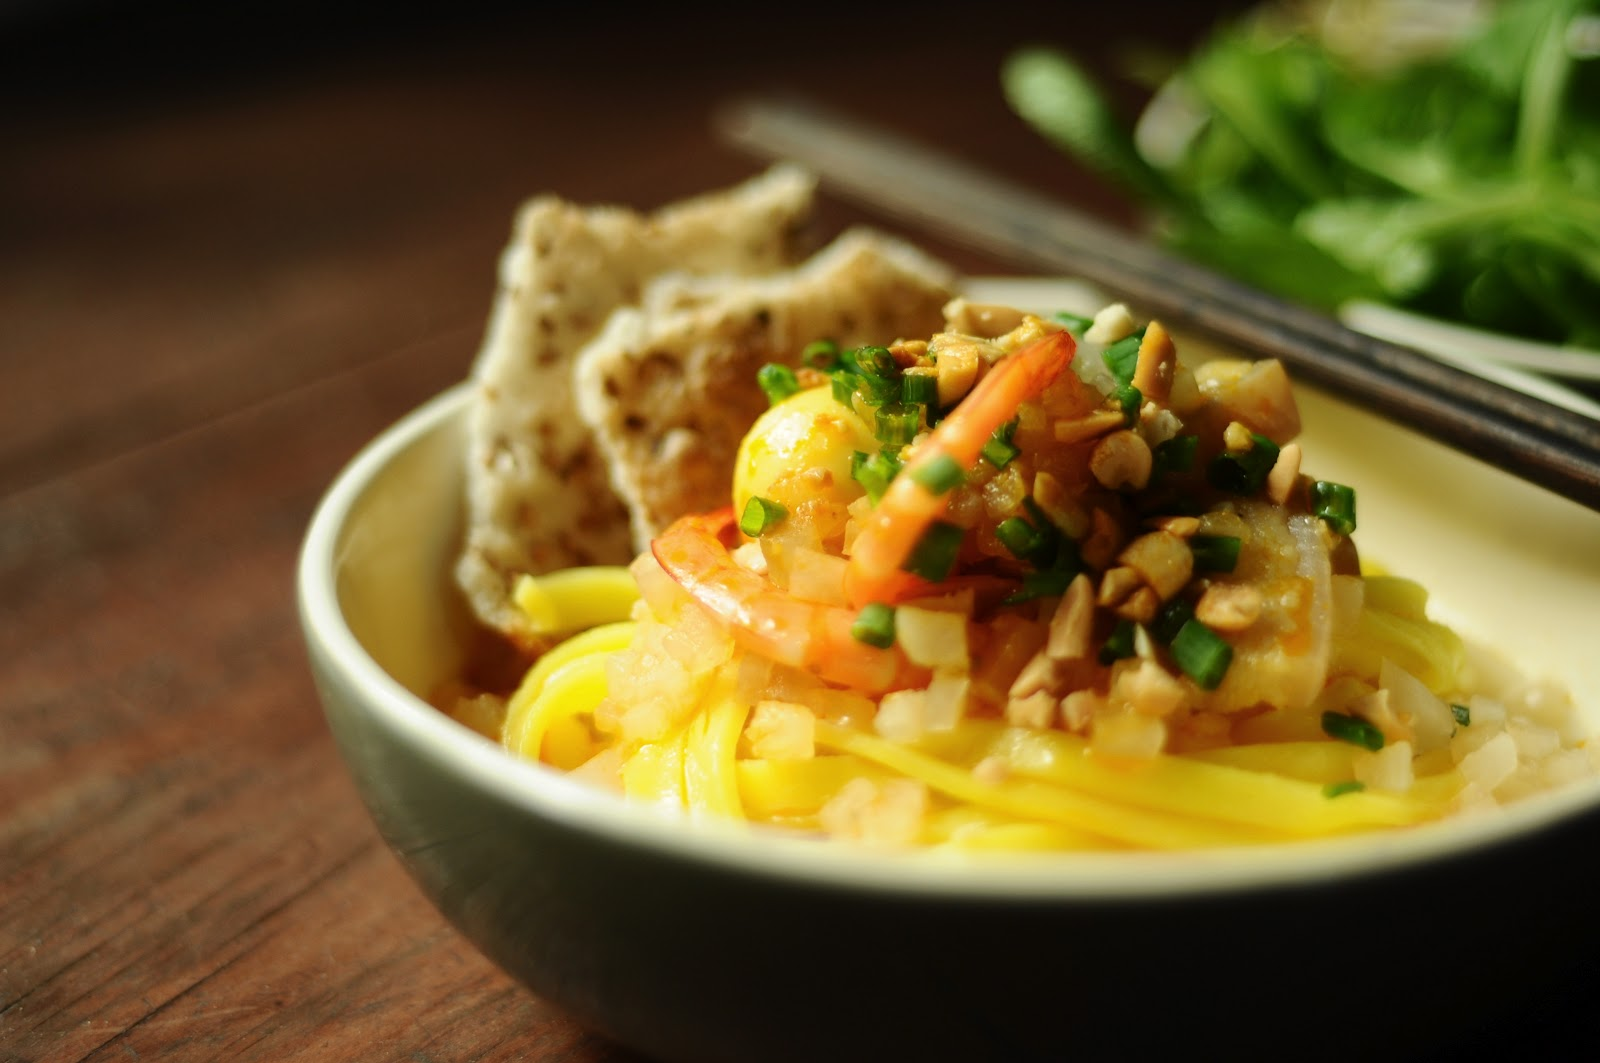 Quang noodle is so tempting to both Vietnamese and foreign tourists